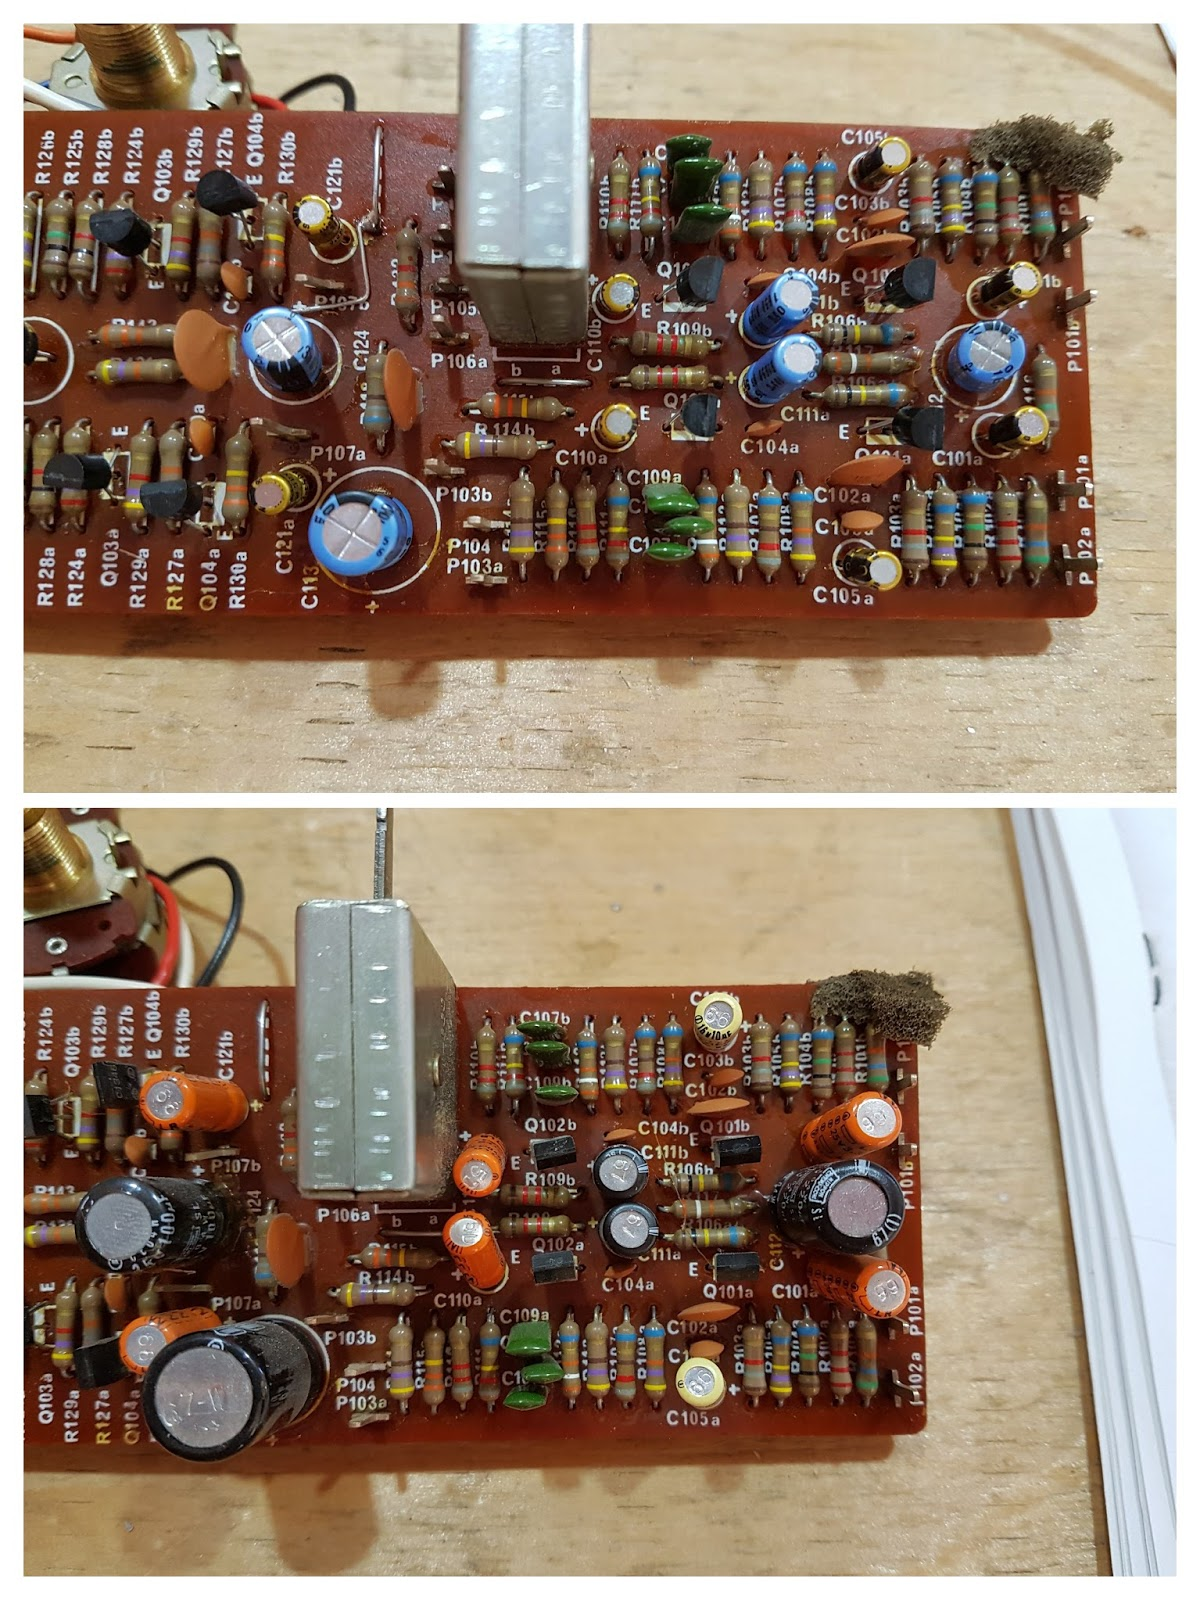 Brahm Rebuilding A 1977 Luxman L 30 Stereo Amplifier Pin Circuit Board Capacitors Electronics Operational Amplifiers On Top Pb 1008 With New Blue Gold And Transistors Black Bottom Original